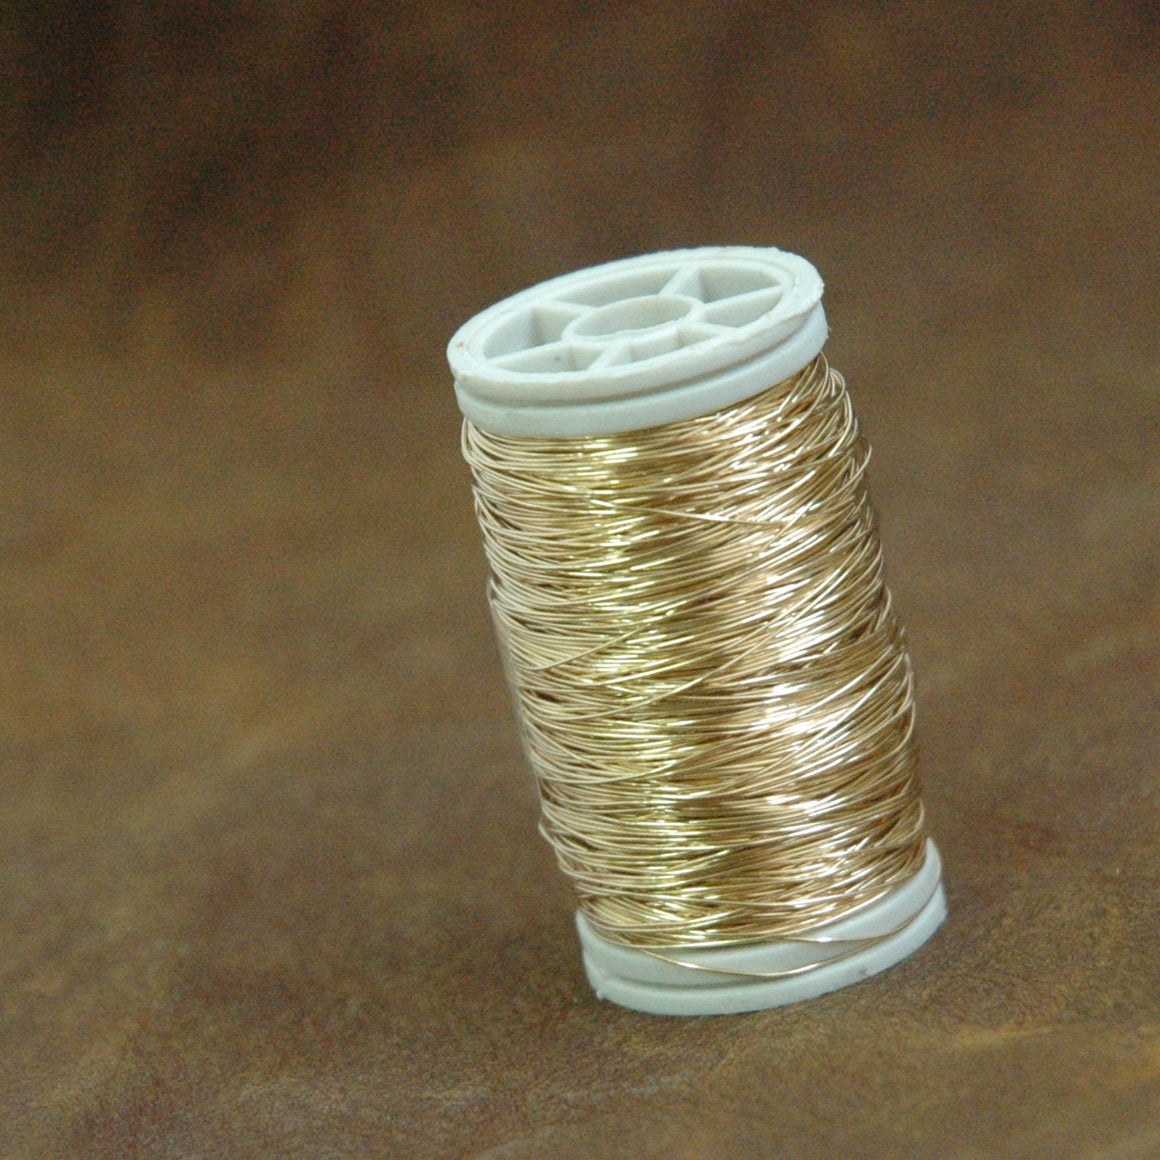 Gold filled wire , dead soft gold filled , 30 gauge , wire crochet supplies, gold wire - Yooladesign